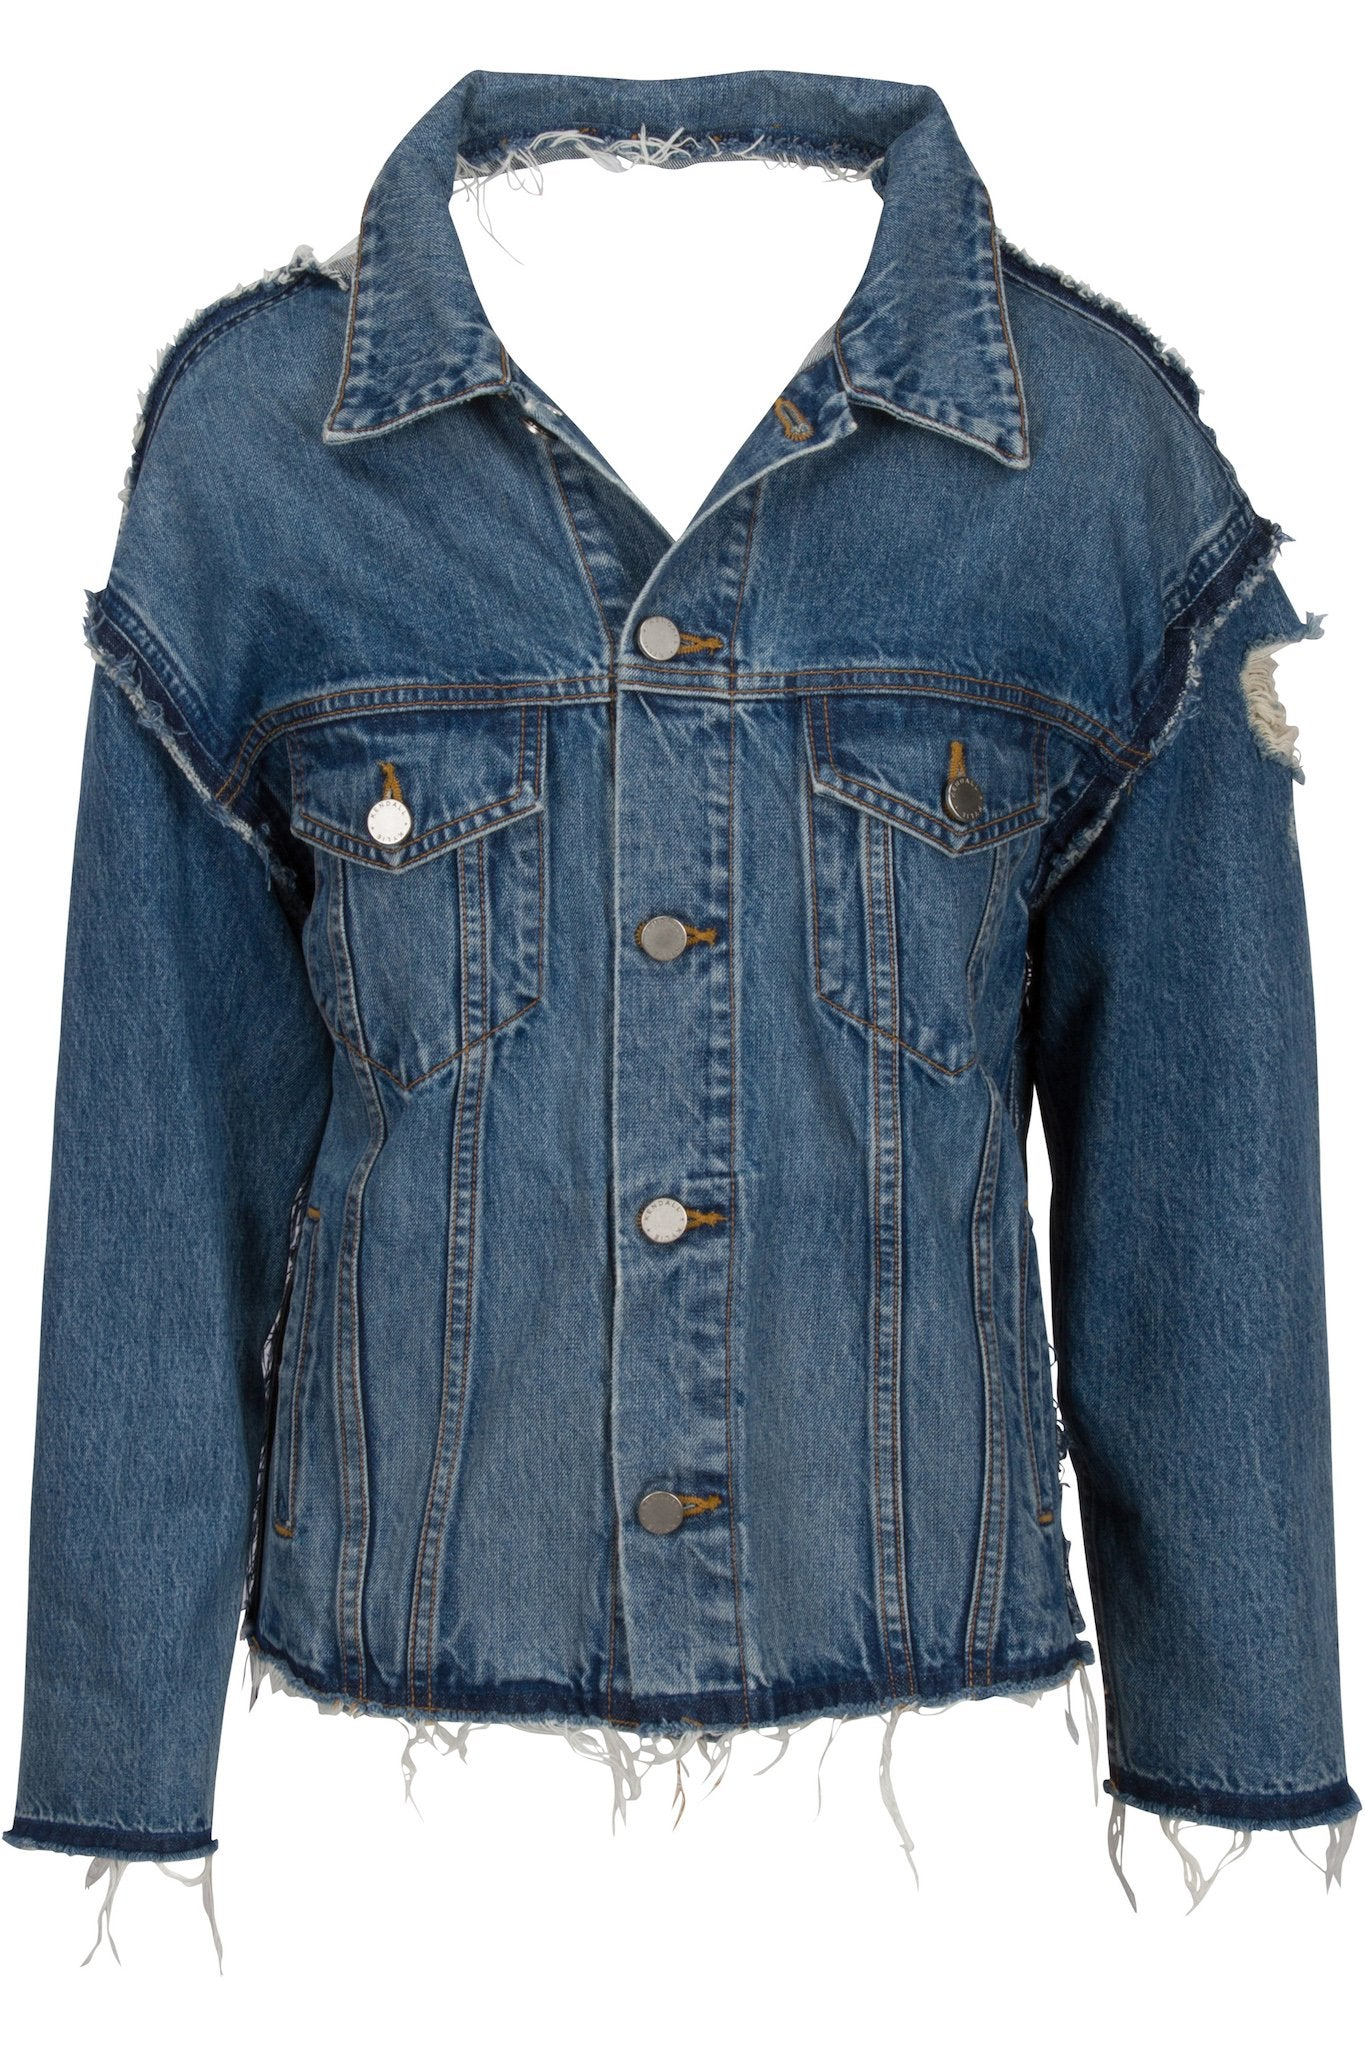 RECONSTRUCTED VINTAGE JACKET JACKETS by KENDALL + KYLIE